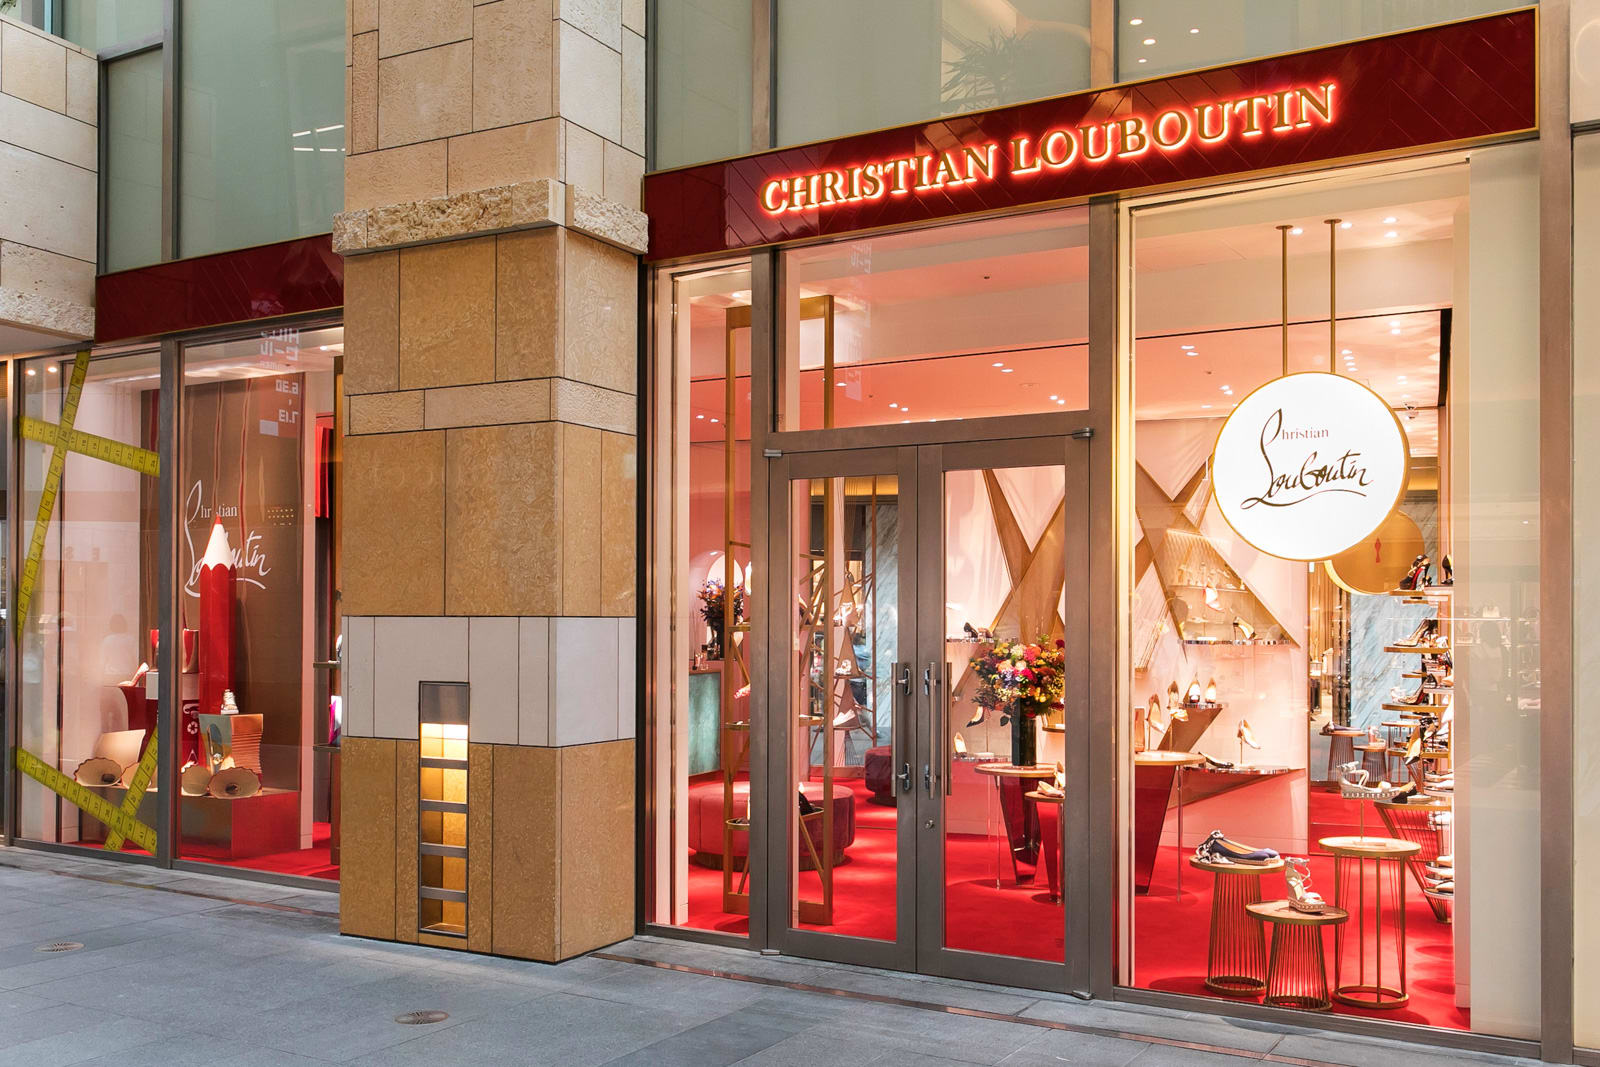 c3ac65531a14 Image by: Christian Louboutin